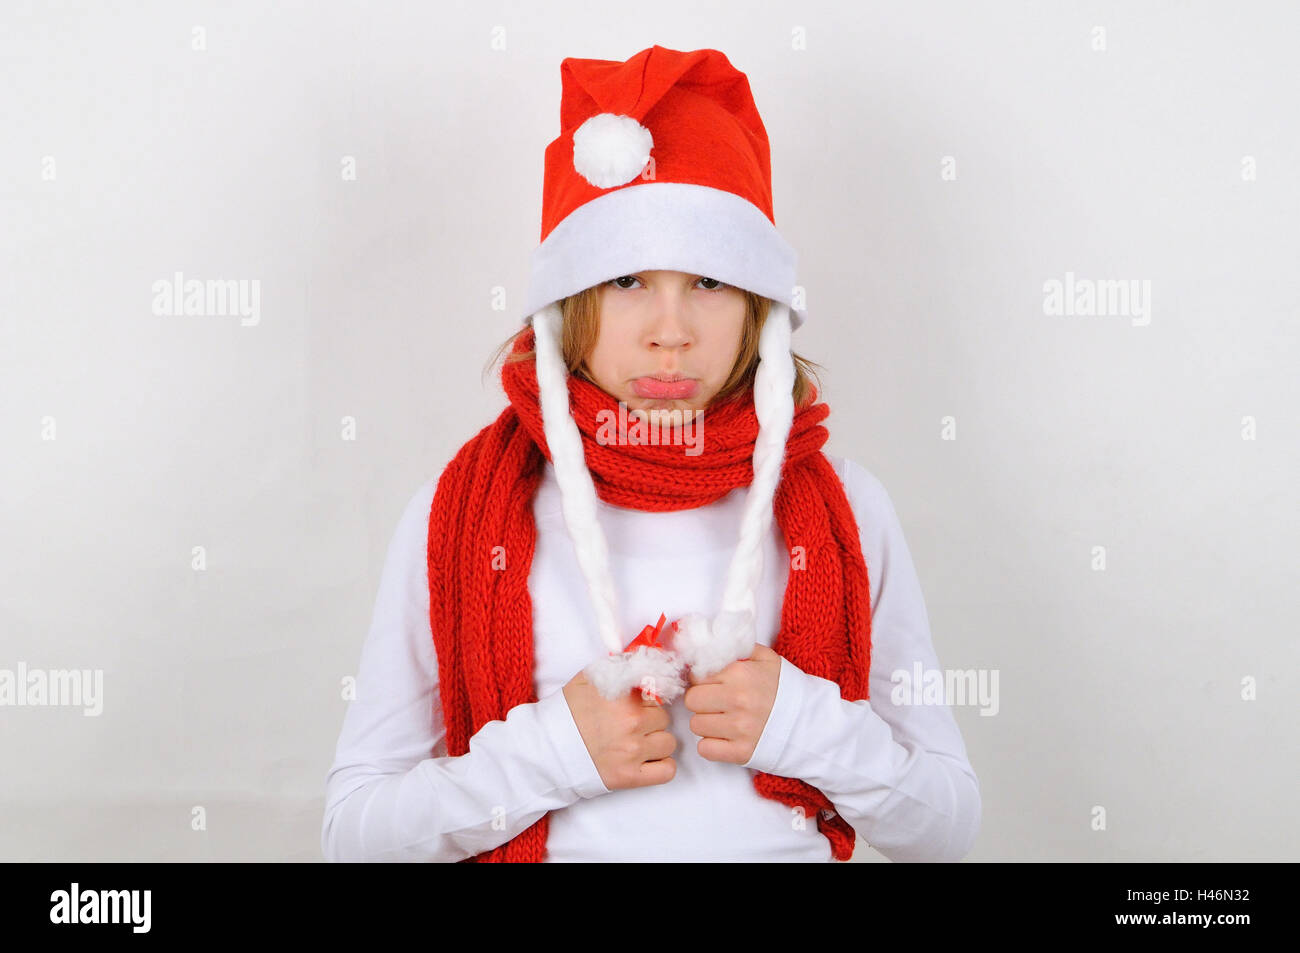 Girl, Santa's hat, view camera, defiantly, Christmas, winter, Santa, Santa's hat, person, child, scarf, red, gesture, Stock Photo